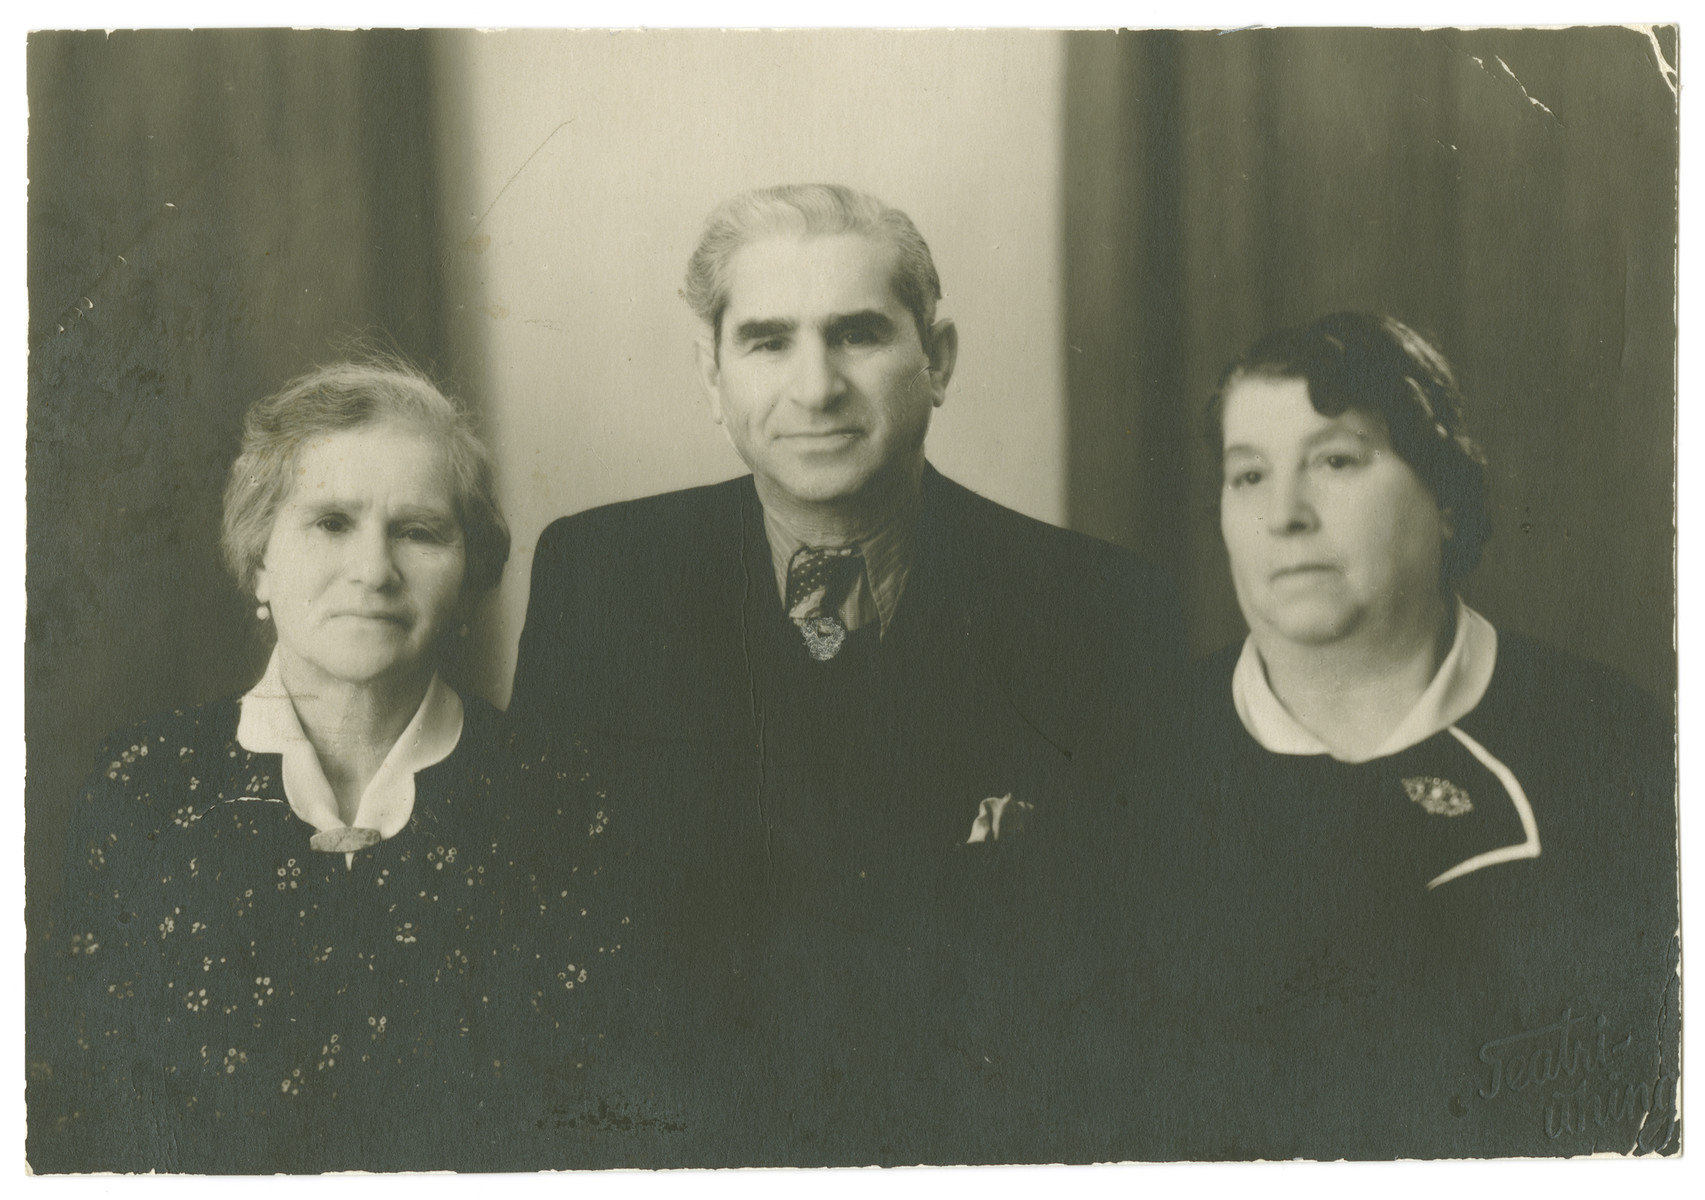 Portrait of the Aronovich siblings [?]in postwar Estonia.  Pictured from left to right are Roche Lea Meirtal, Jacob Aronovich, and Esther Kozolovsky.